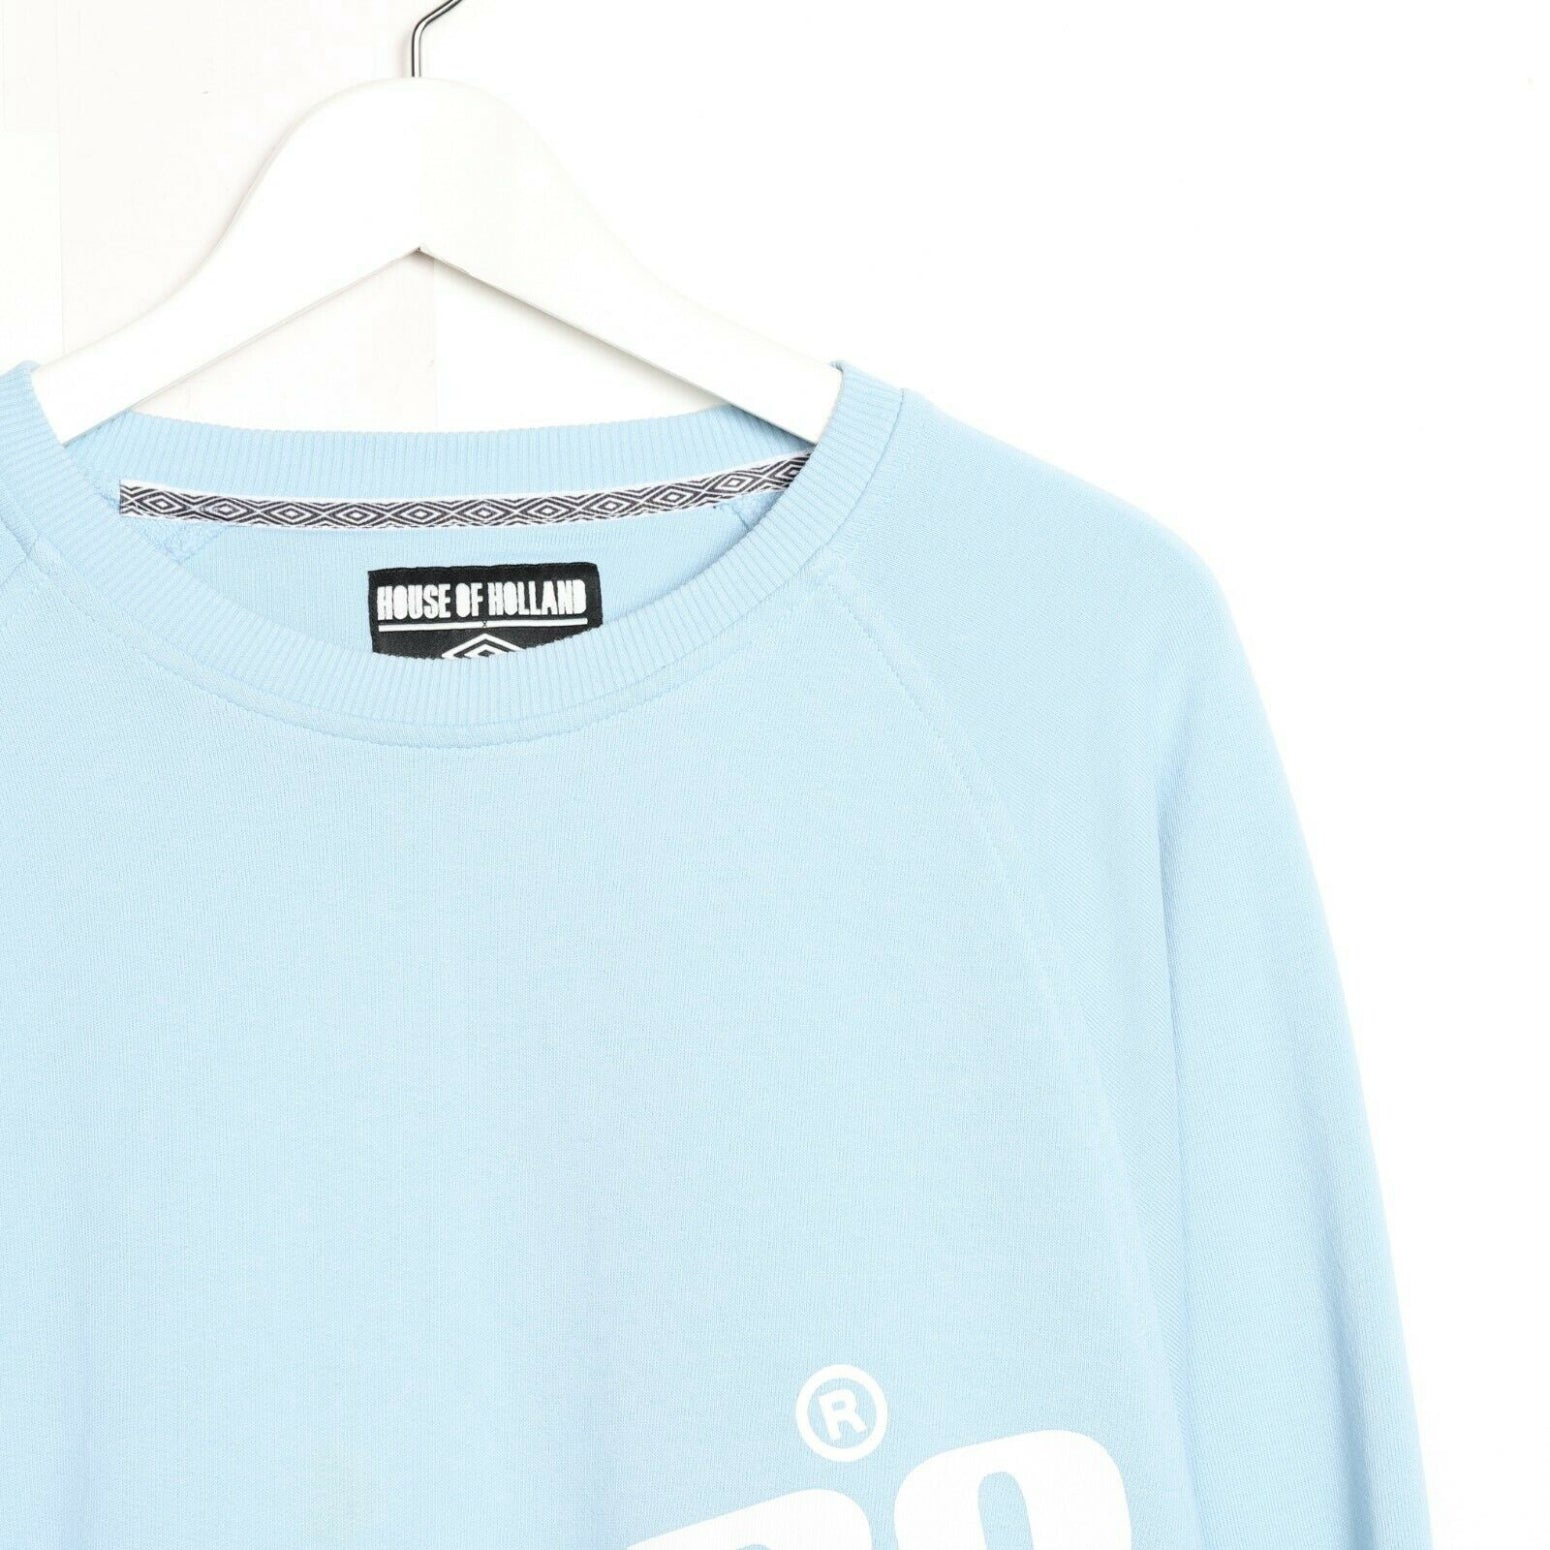 Vintage UMBRO Big Logo Sweatshirt Jumper Light Blue | Large L